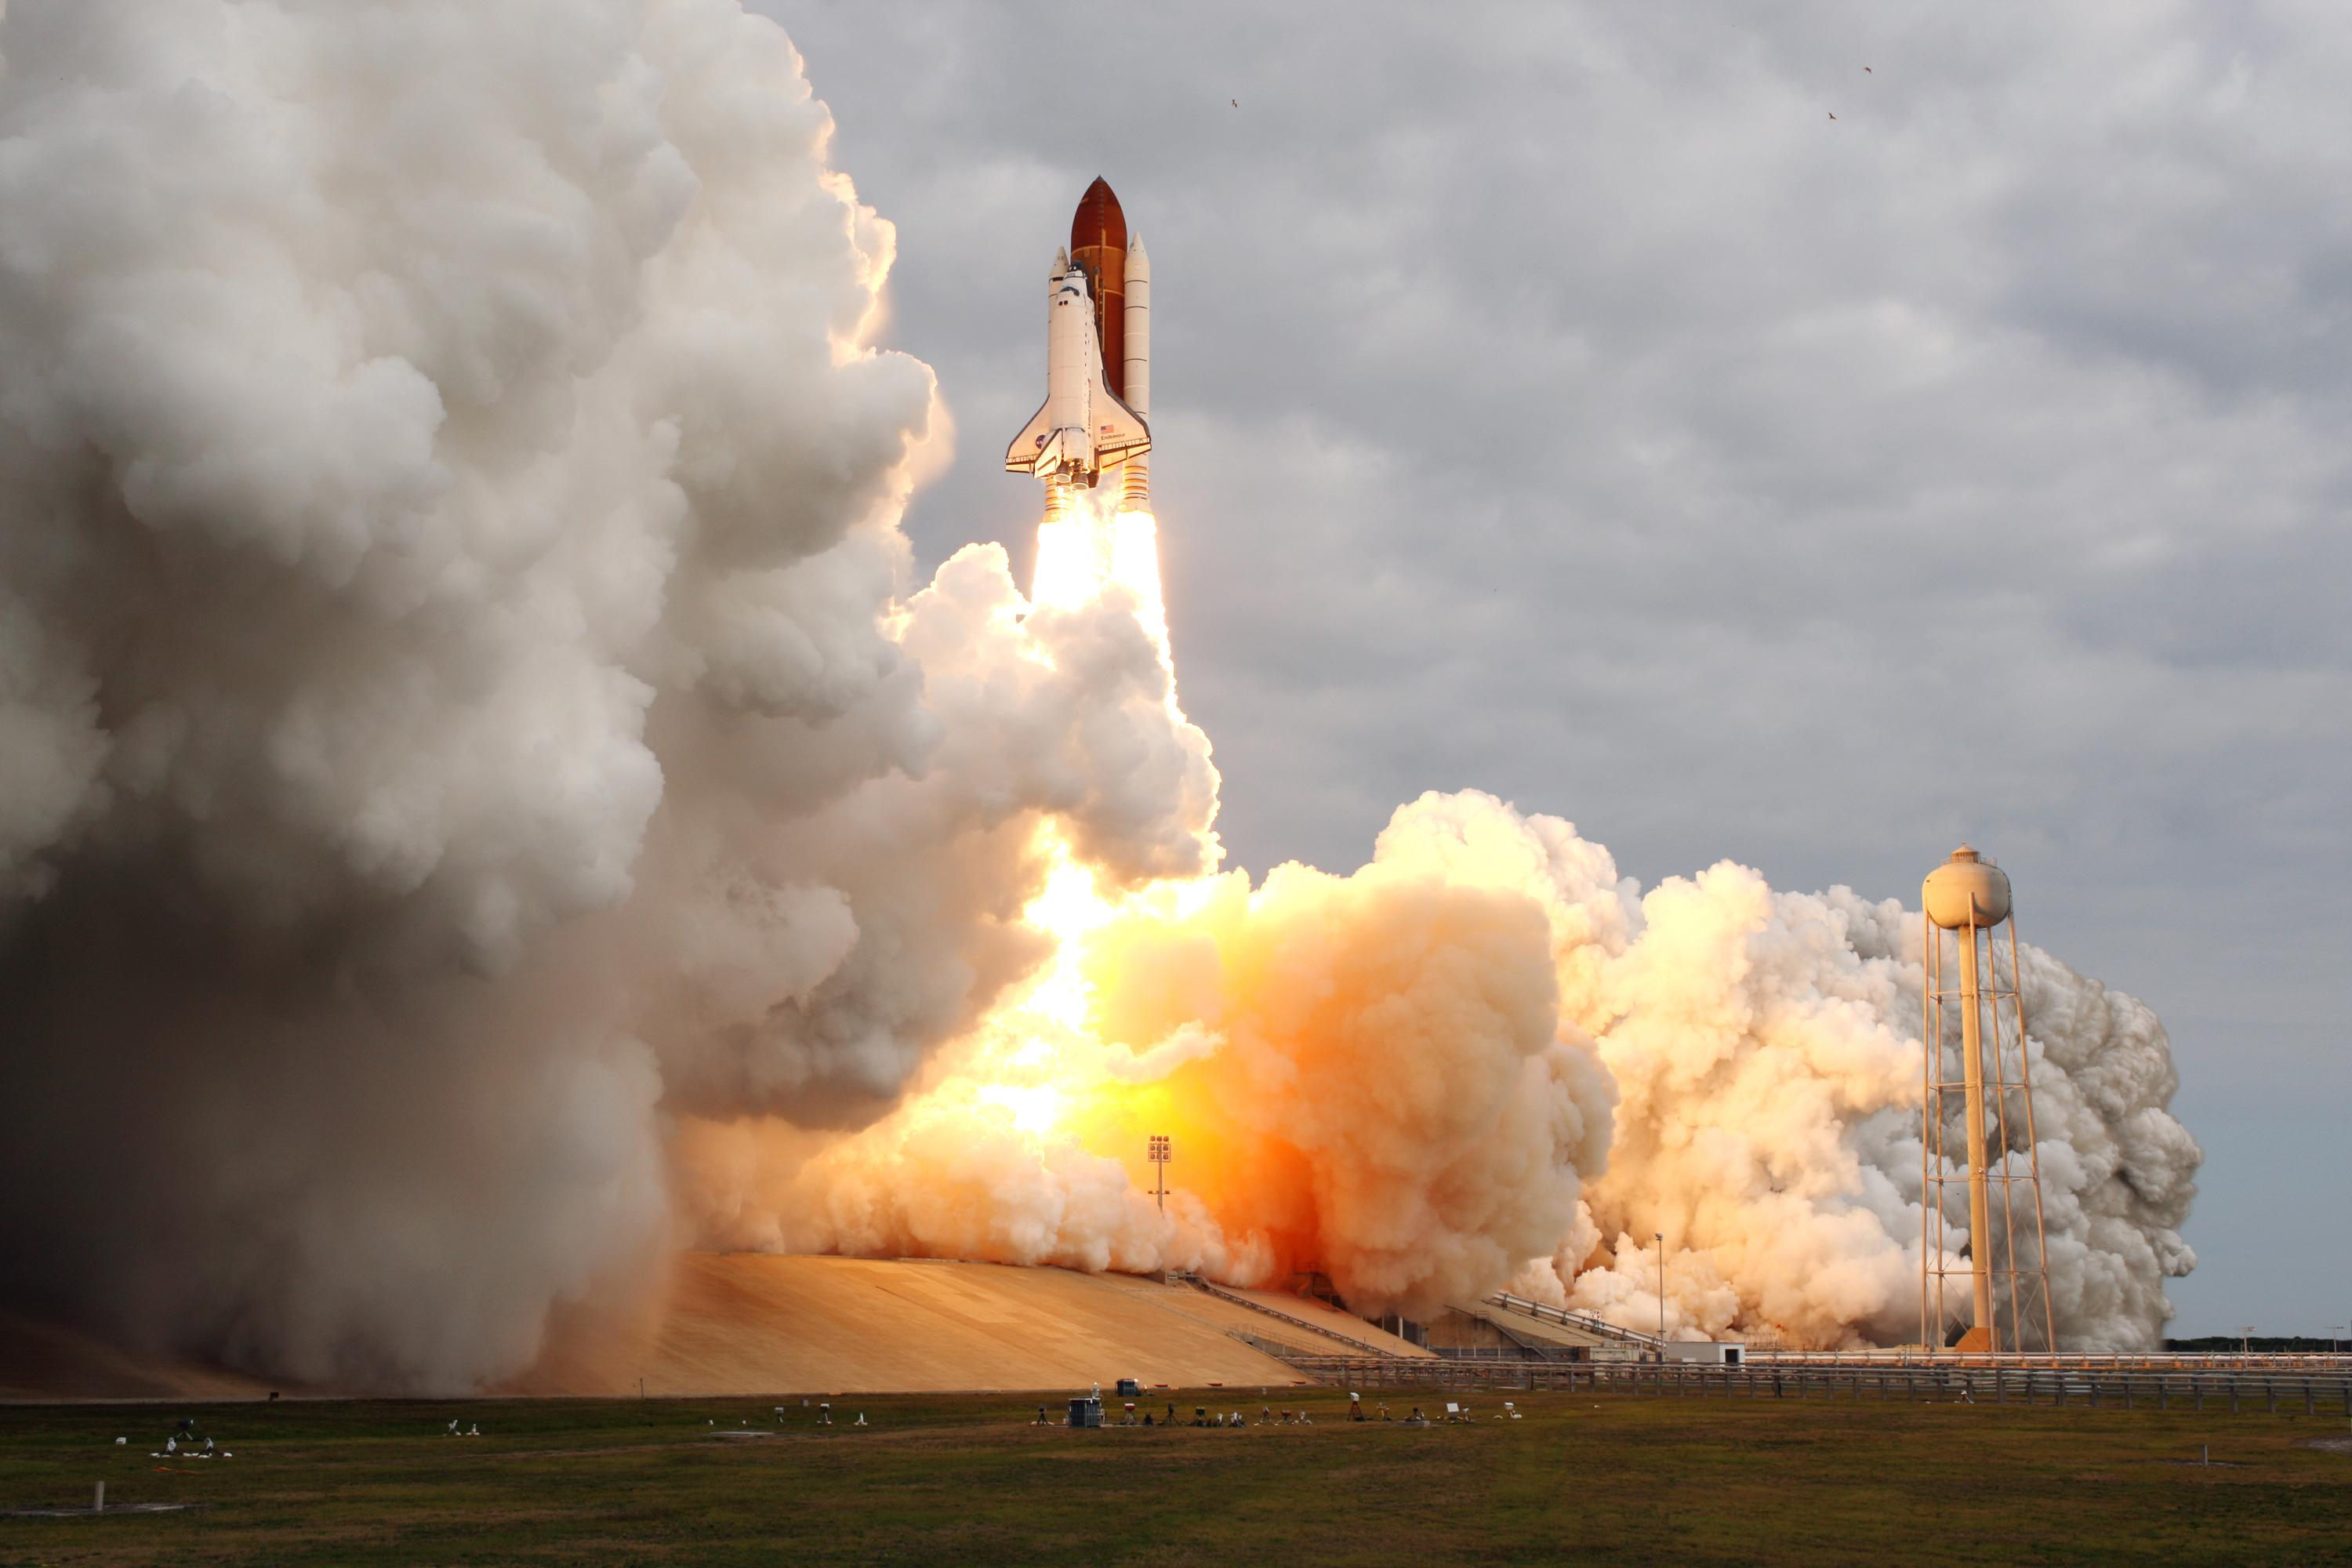 STS-134 Shuttle Mission Lifts Off